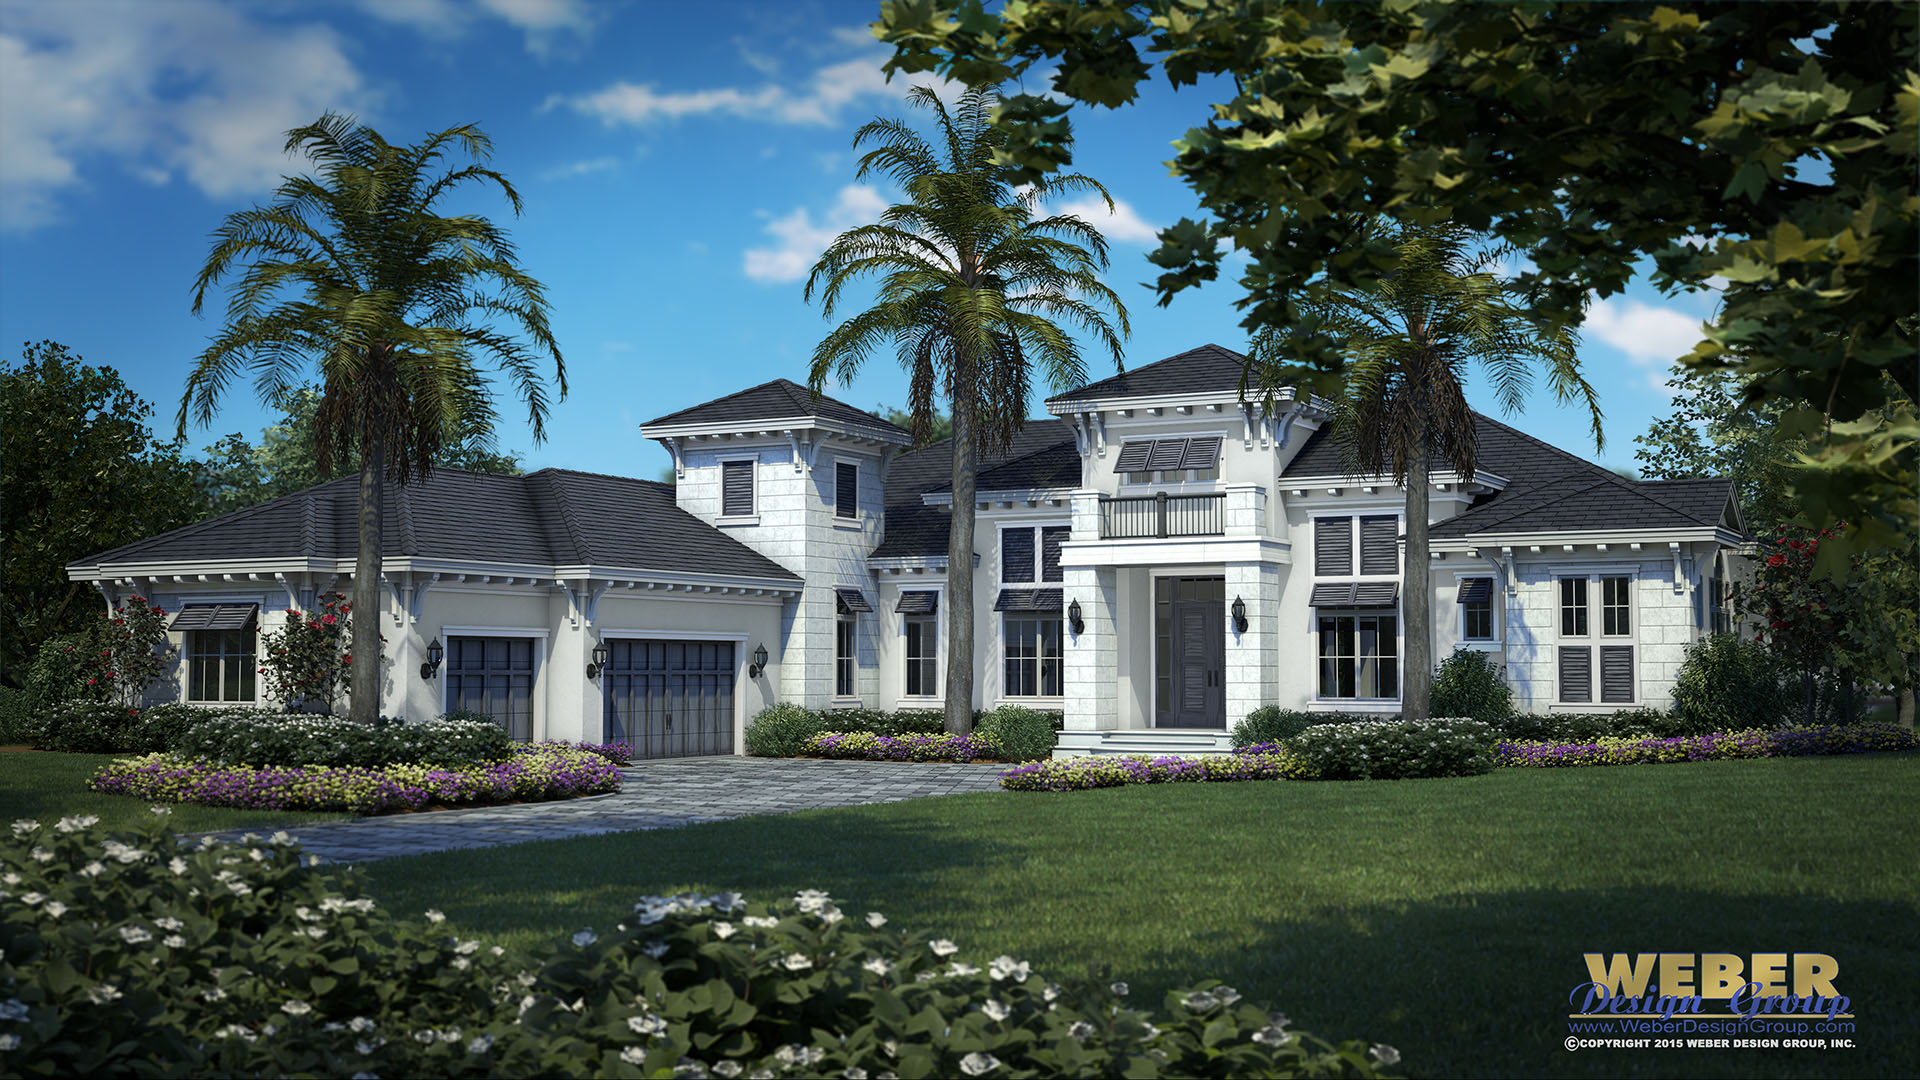 West indies home plan oyster bay model weber design group for Weber design